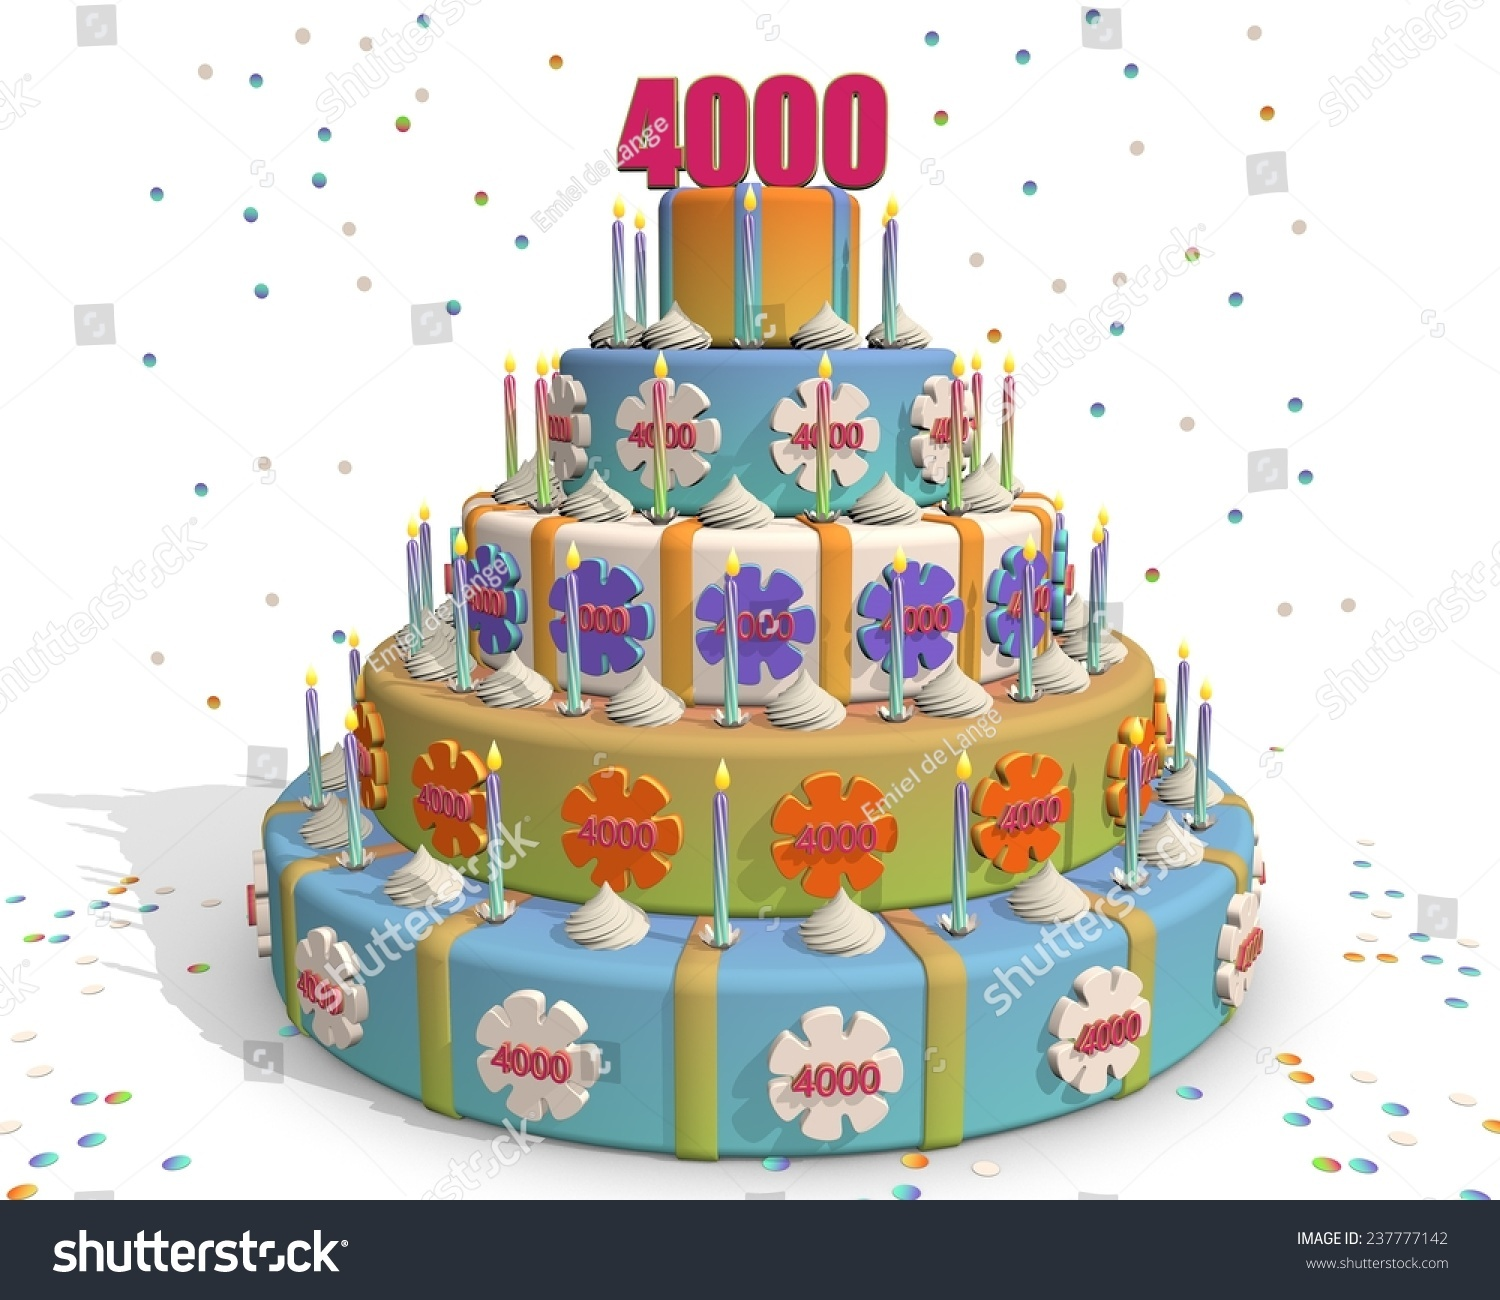 Party Cake Confetti Flowers Candles On Stock Illustration 237777142